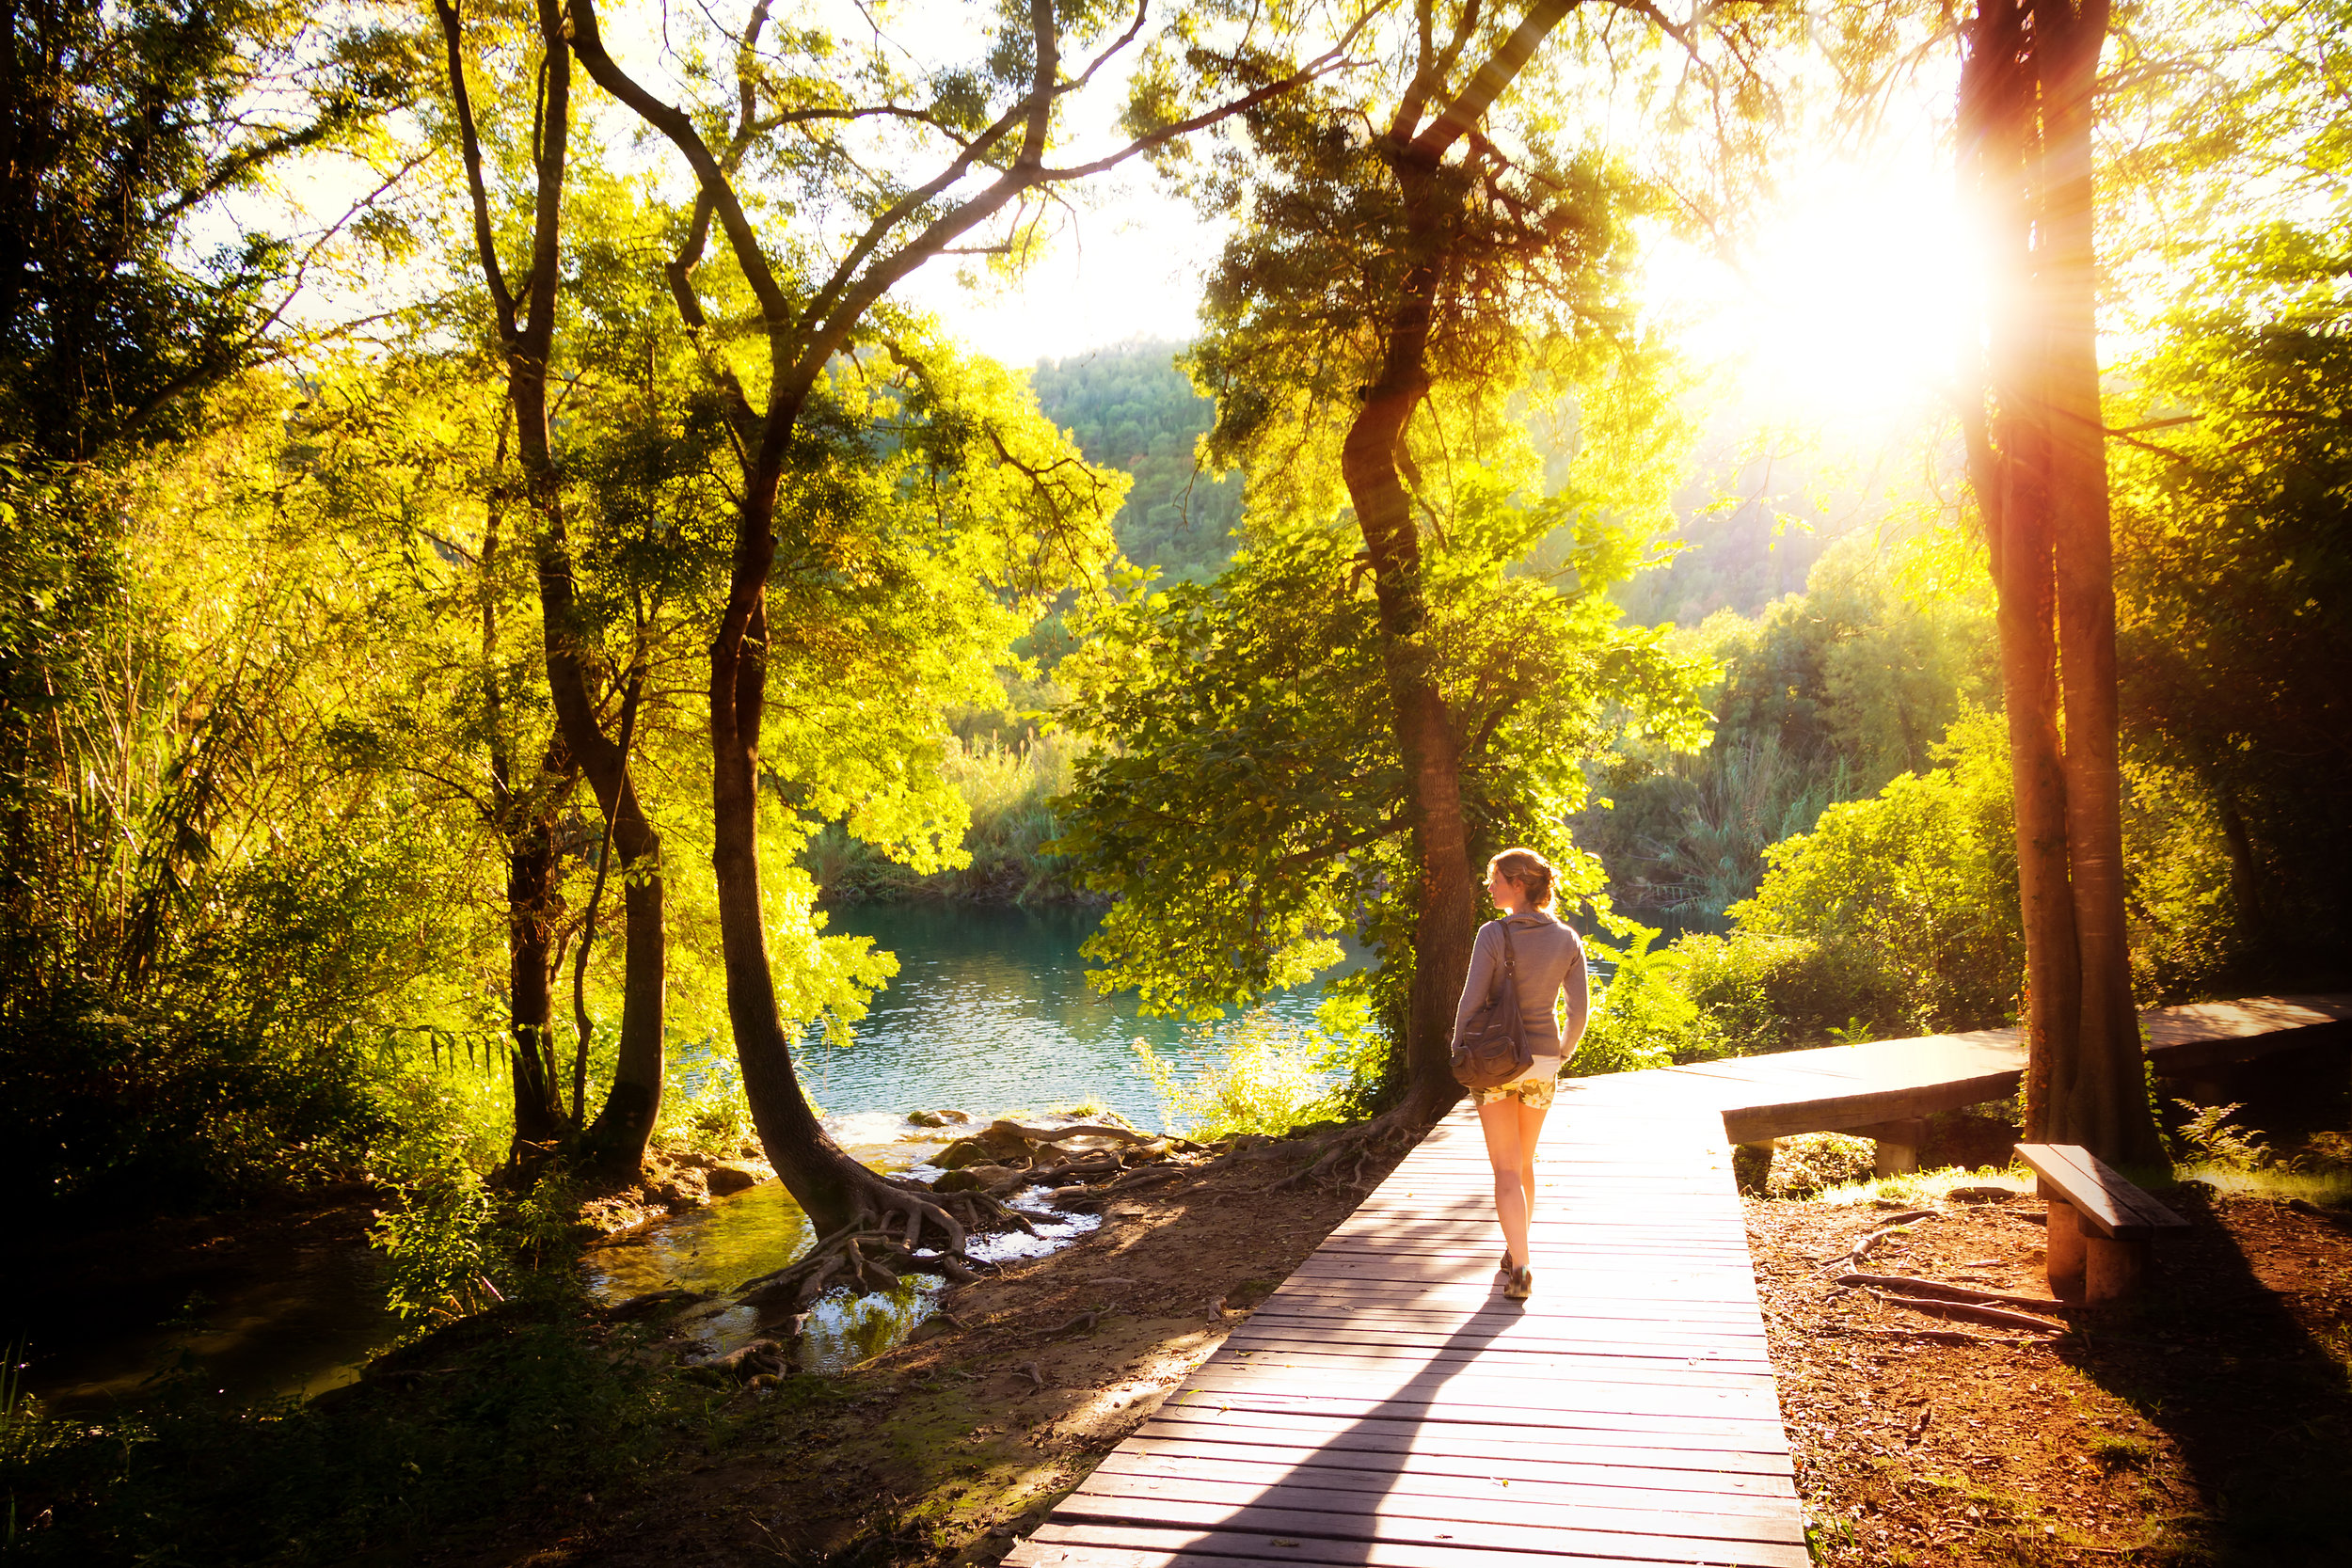 Walk by trees and lake sunshine shutterstock_128818372.jpg